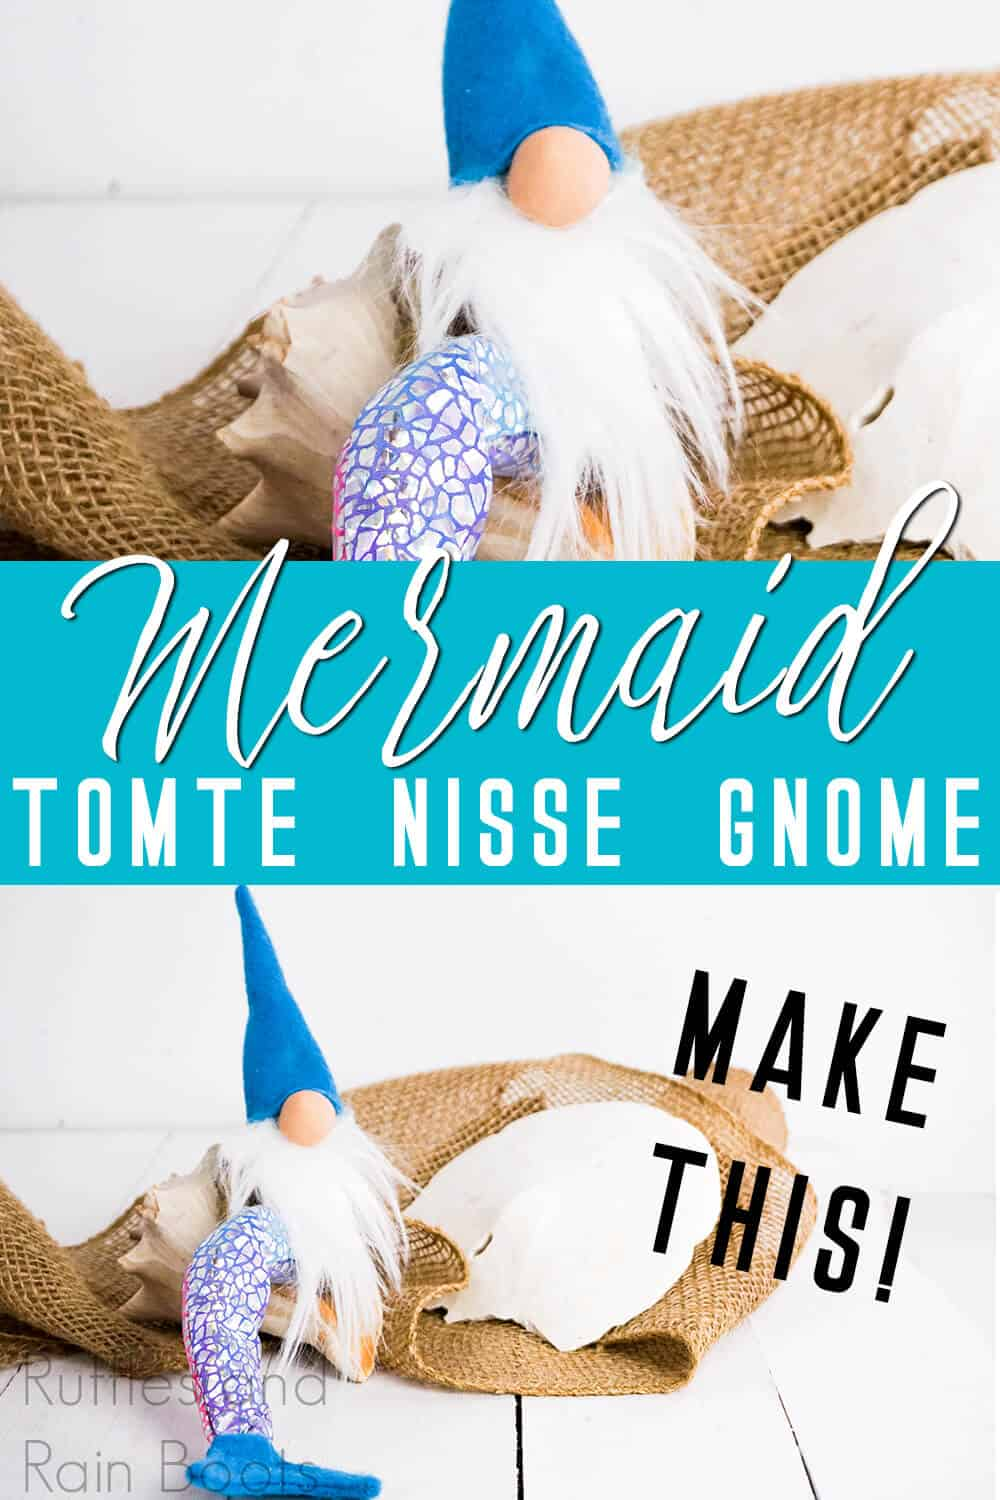 photo collage of small scandinavian tomte with text which reads mermaid tomte nisse gnome make this